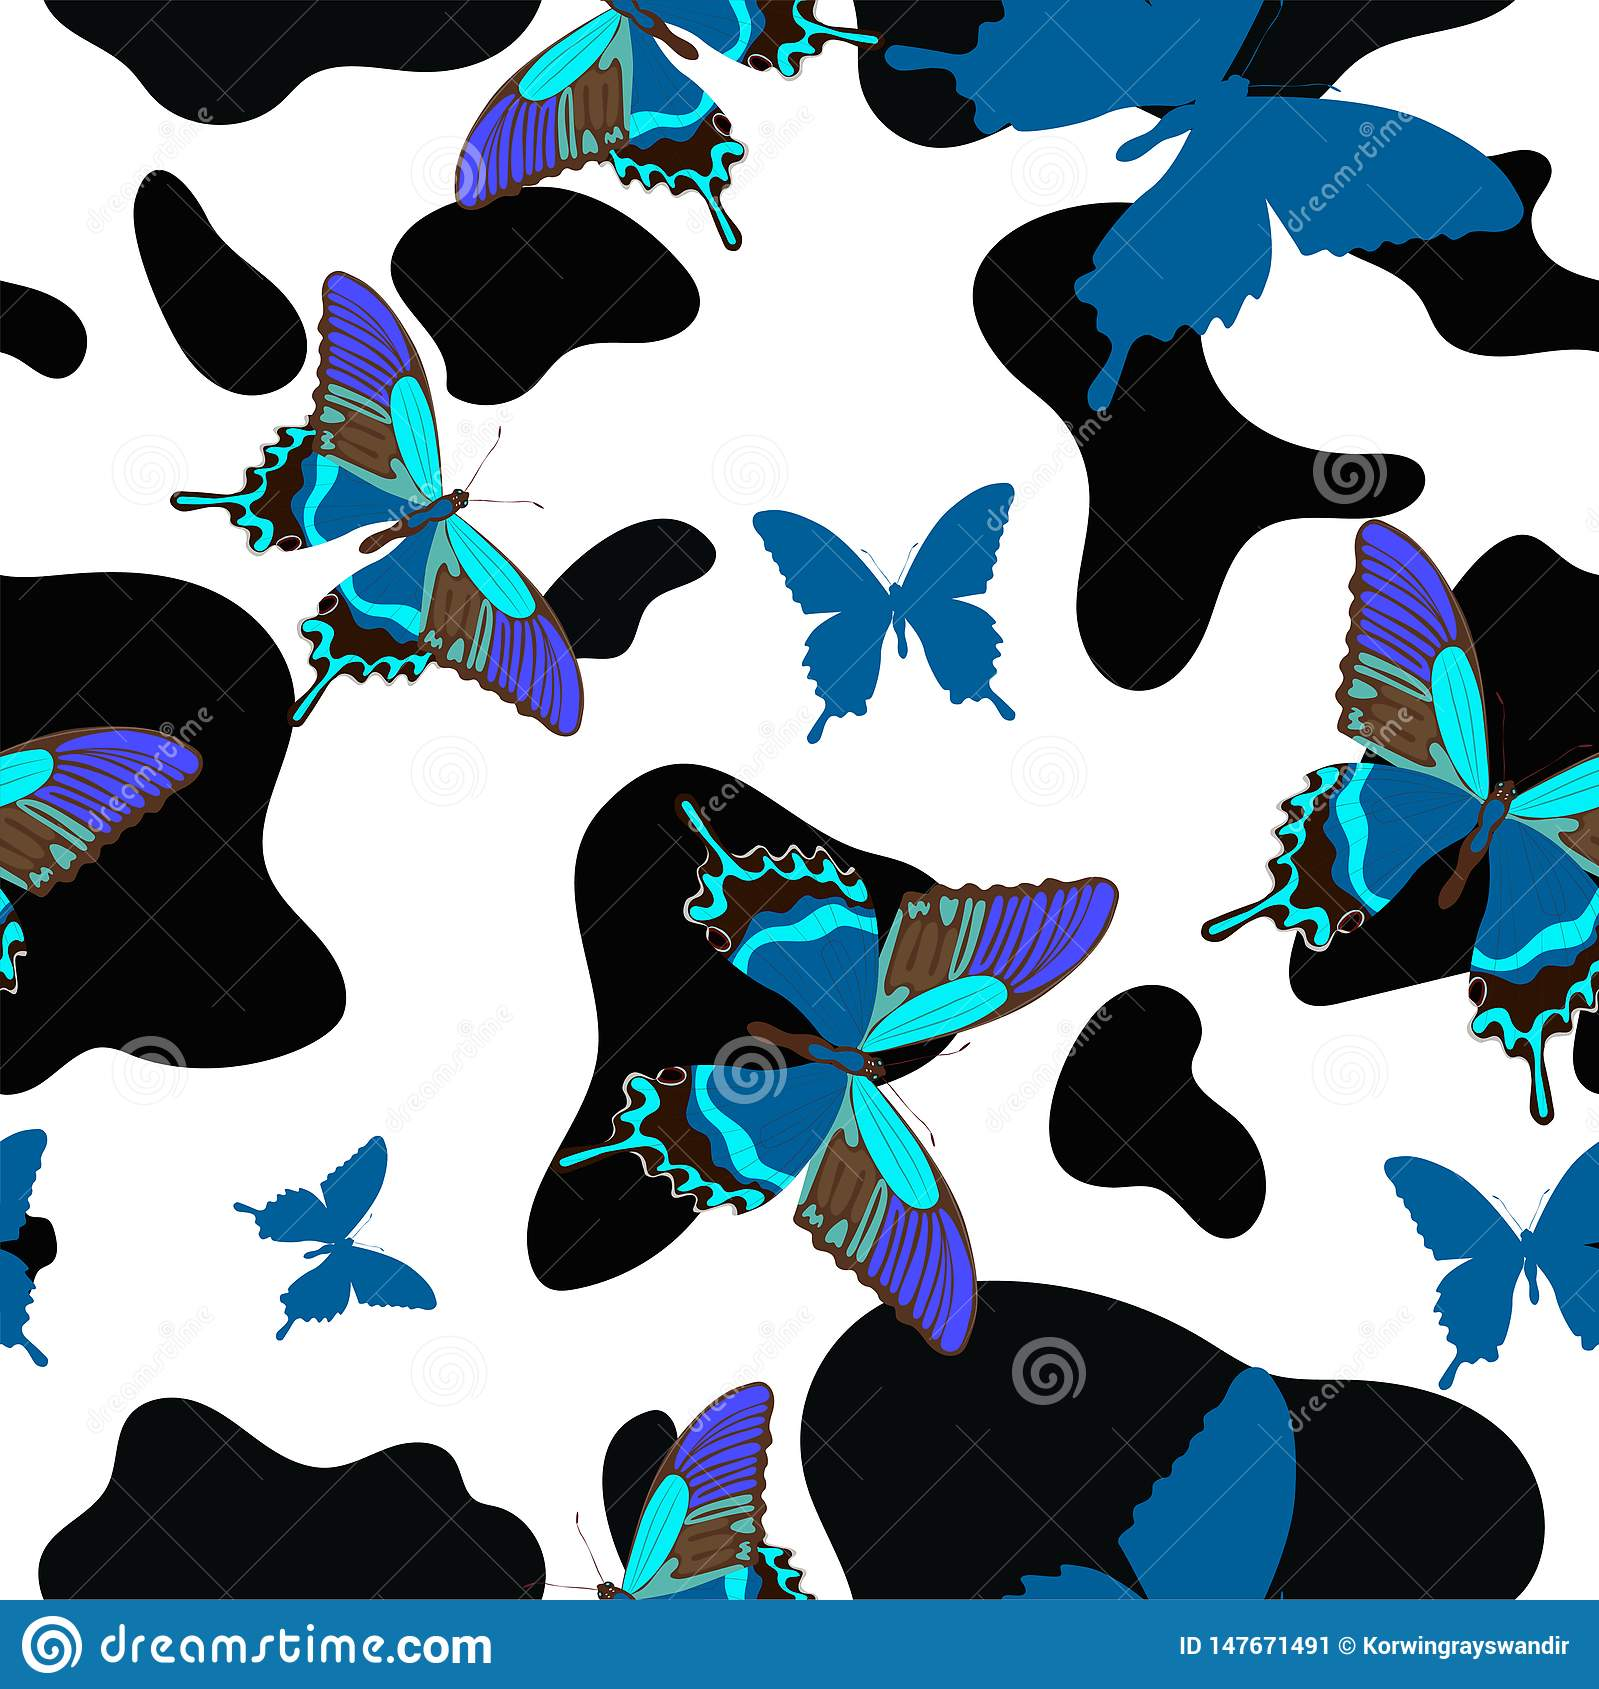 Black and white cowhide combined with blue butterflies, seamless pattern. Vector background